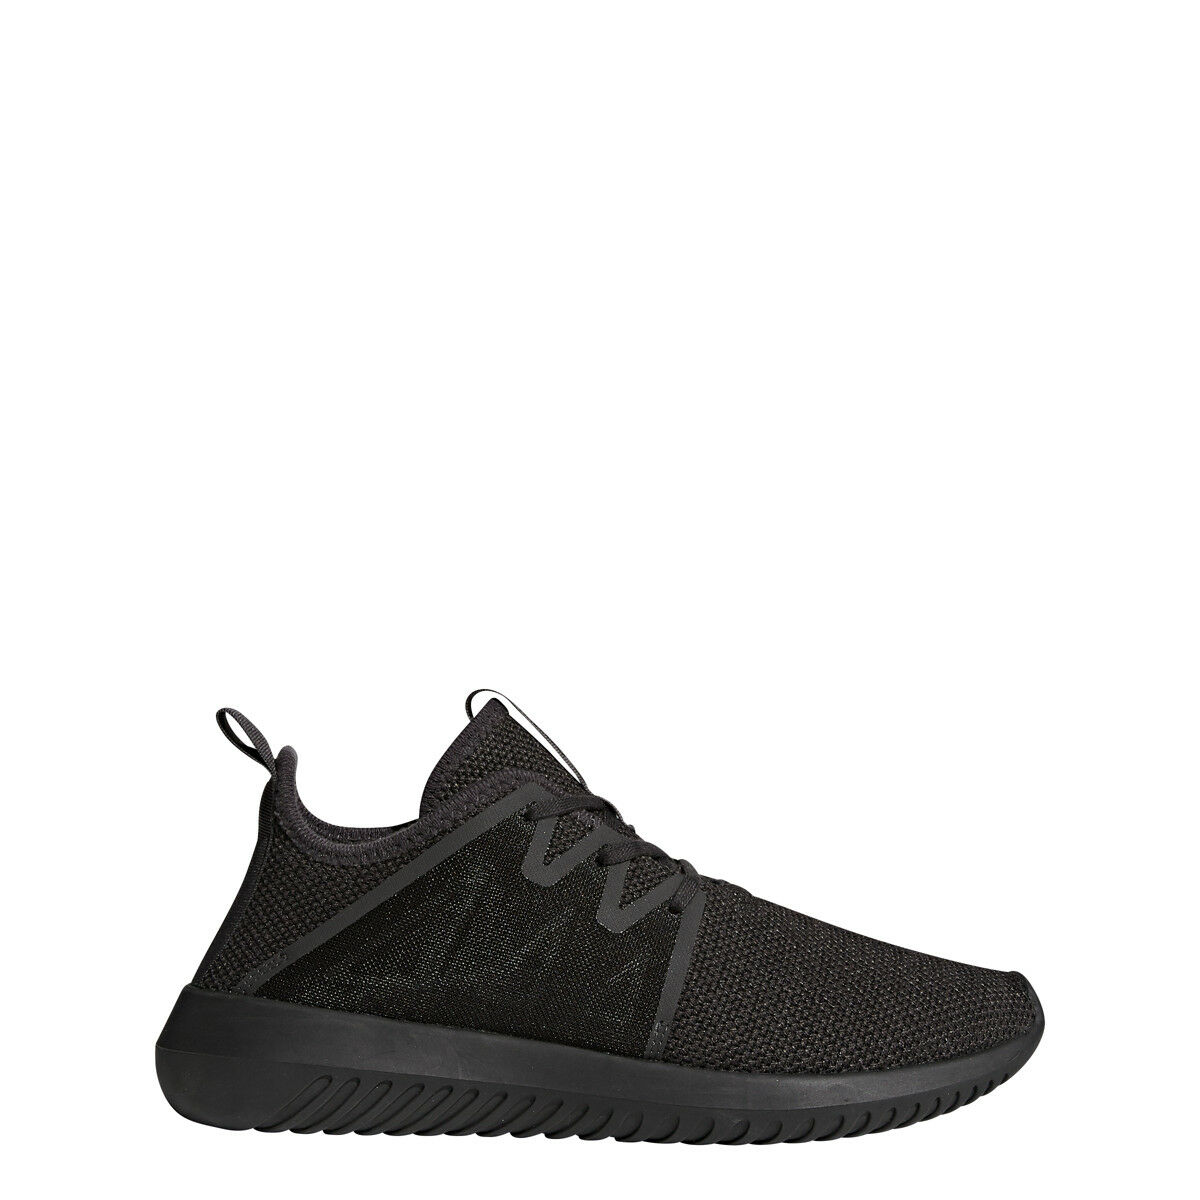 Adidas Originals Women's Tubular Viral2 W Sneaker - BY9747